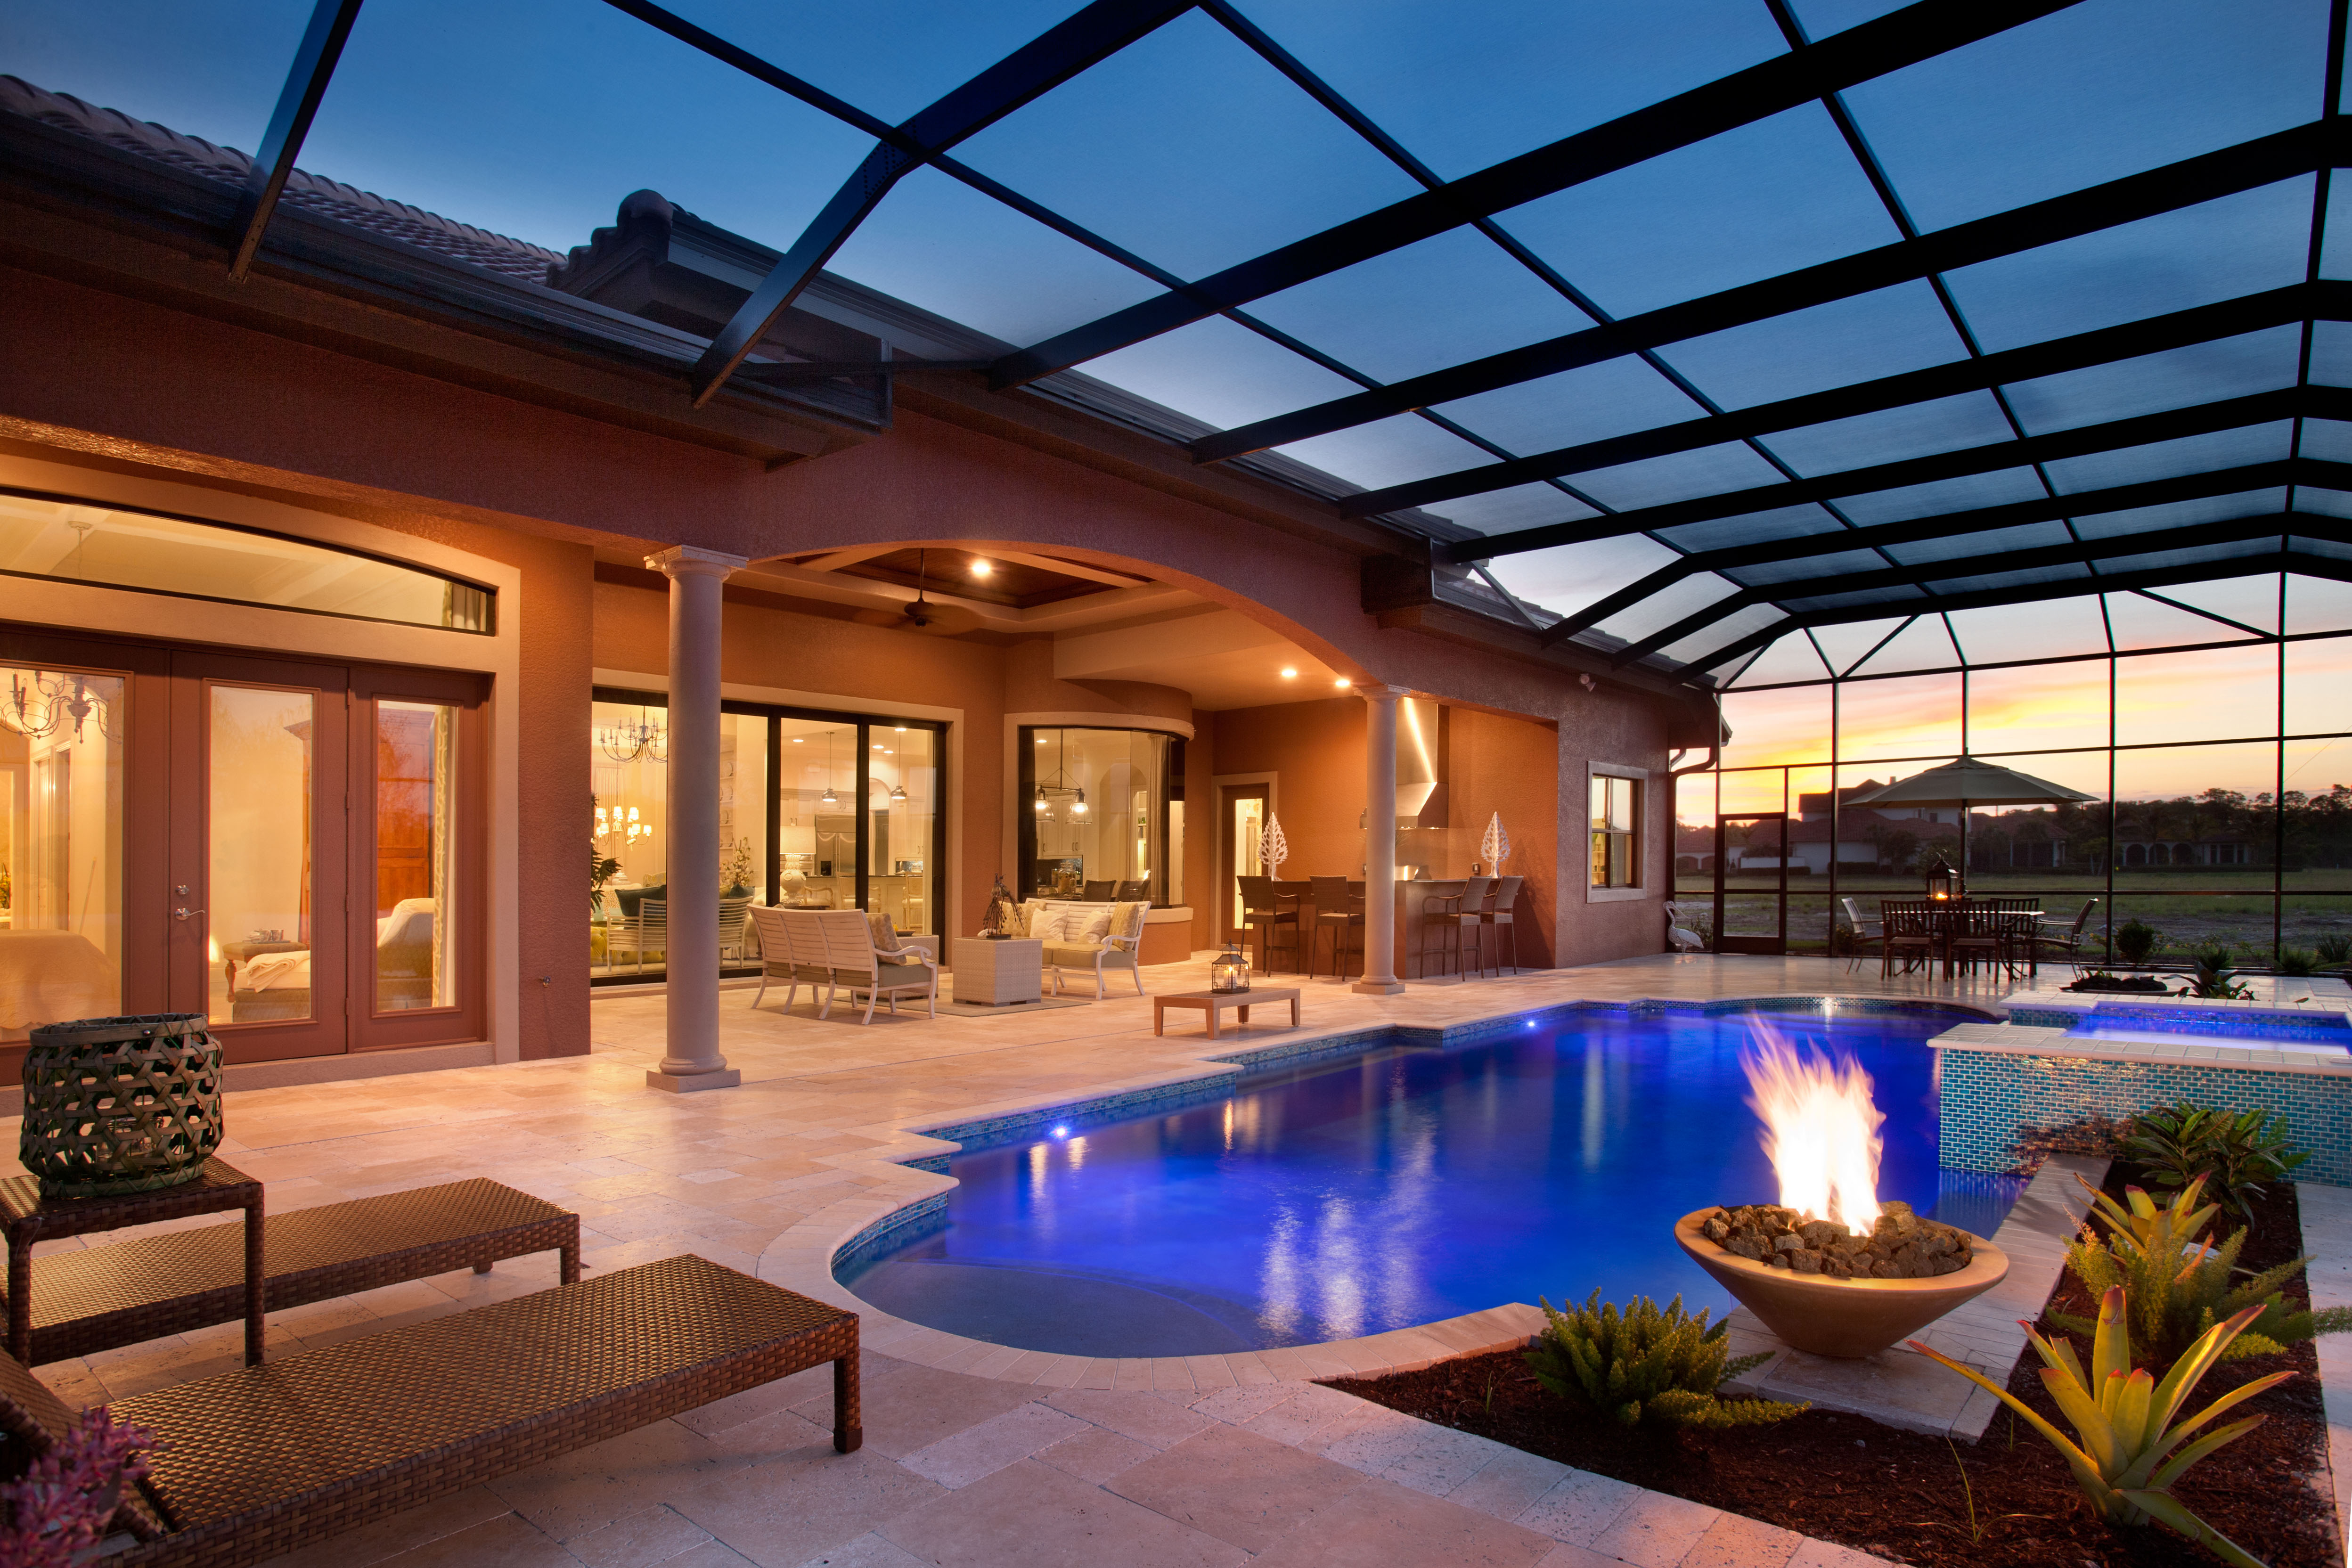 Serenity pool spa of bonita springs florida earns honor for Spa builders